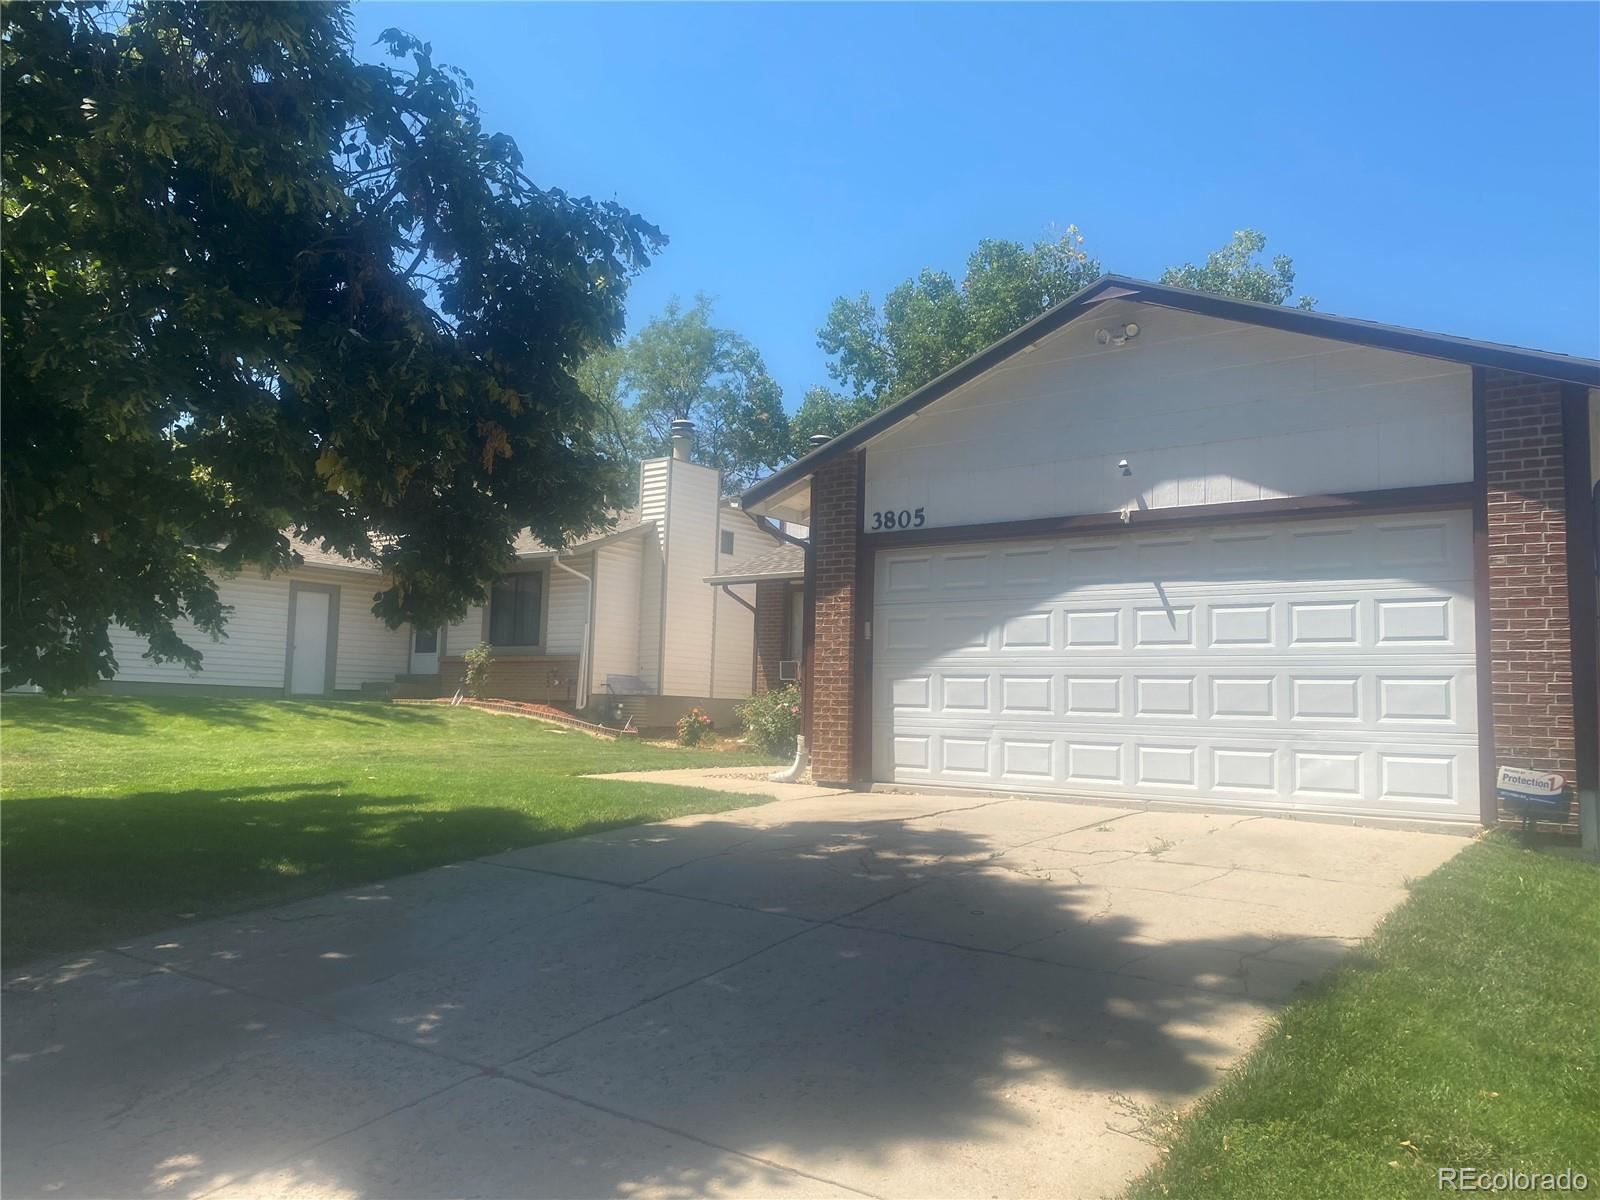 3805 S Ouray Way, Aurora, CO 80013 - MLS#: 6439469